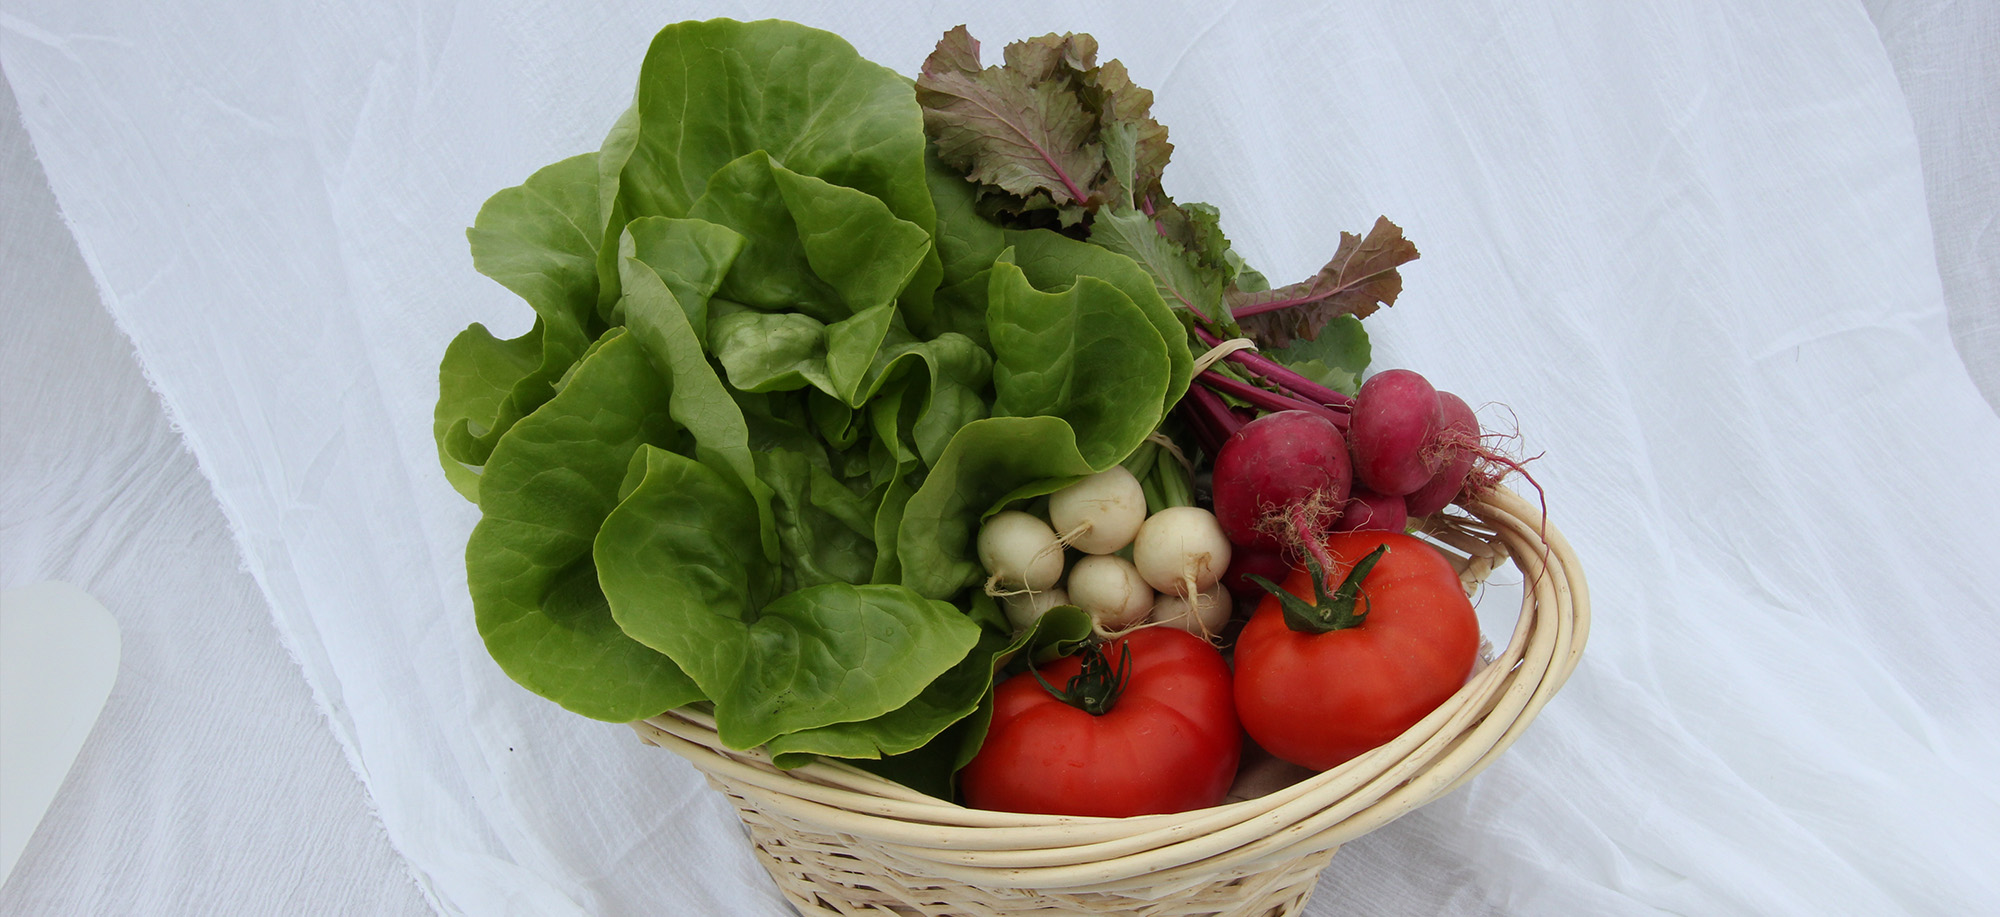 We Offer A Seasonal Variety of Fresh Produce